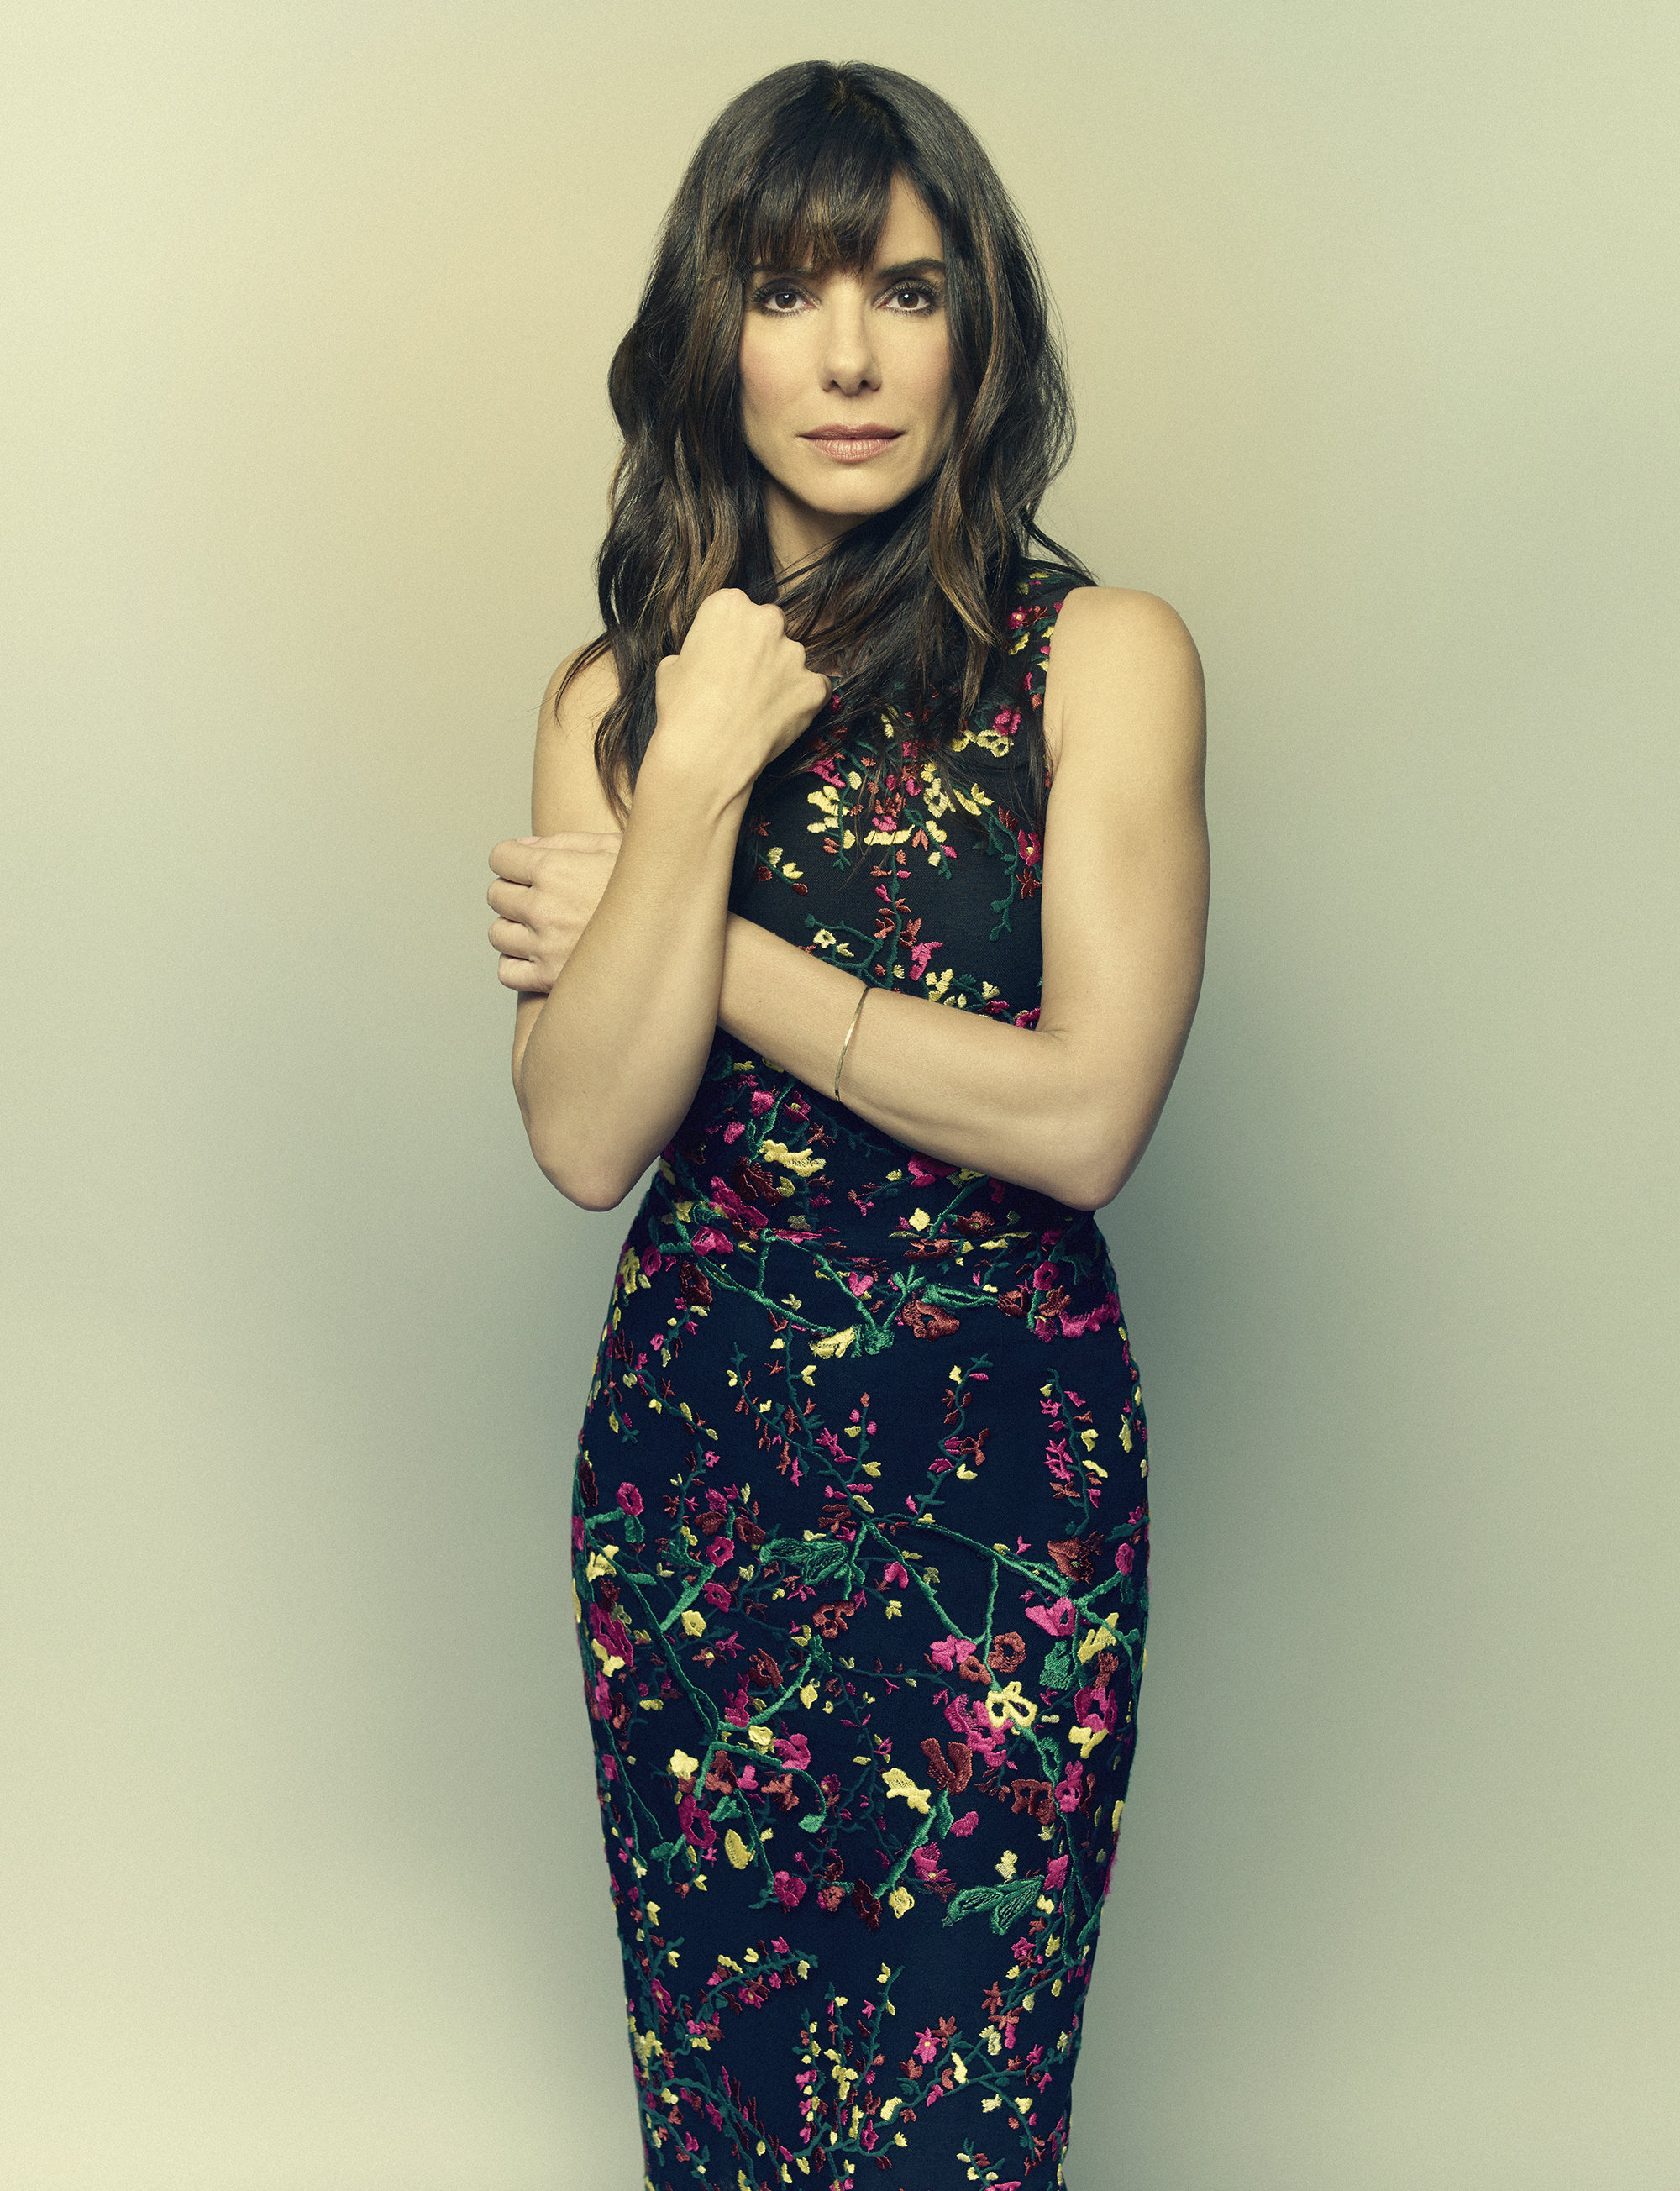 Sandra Bullock appears in the Oct. 23, 2015, issue of TIME